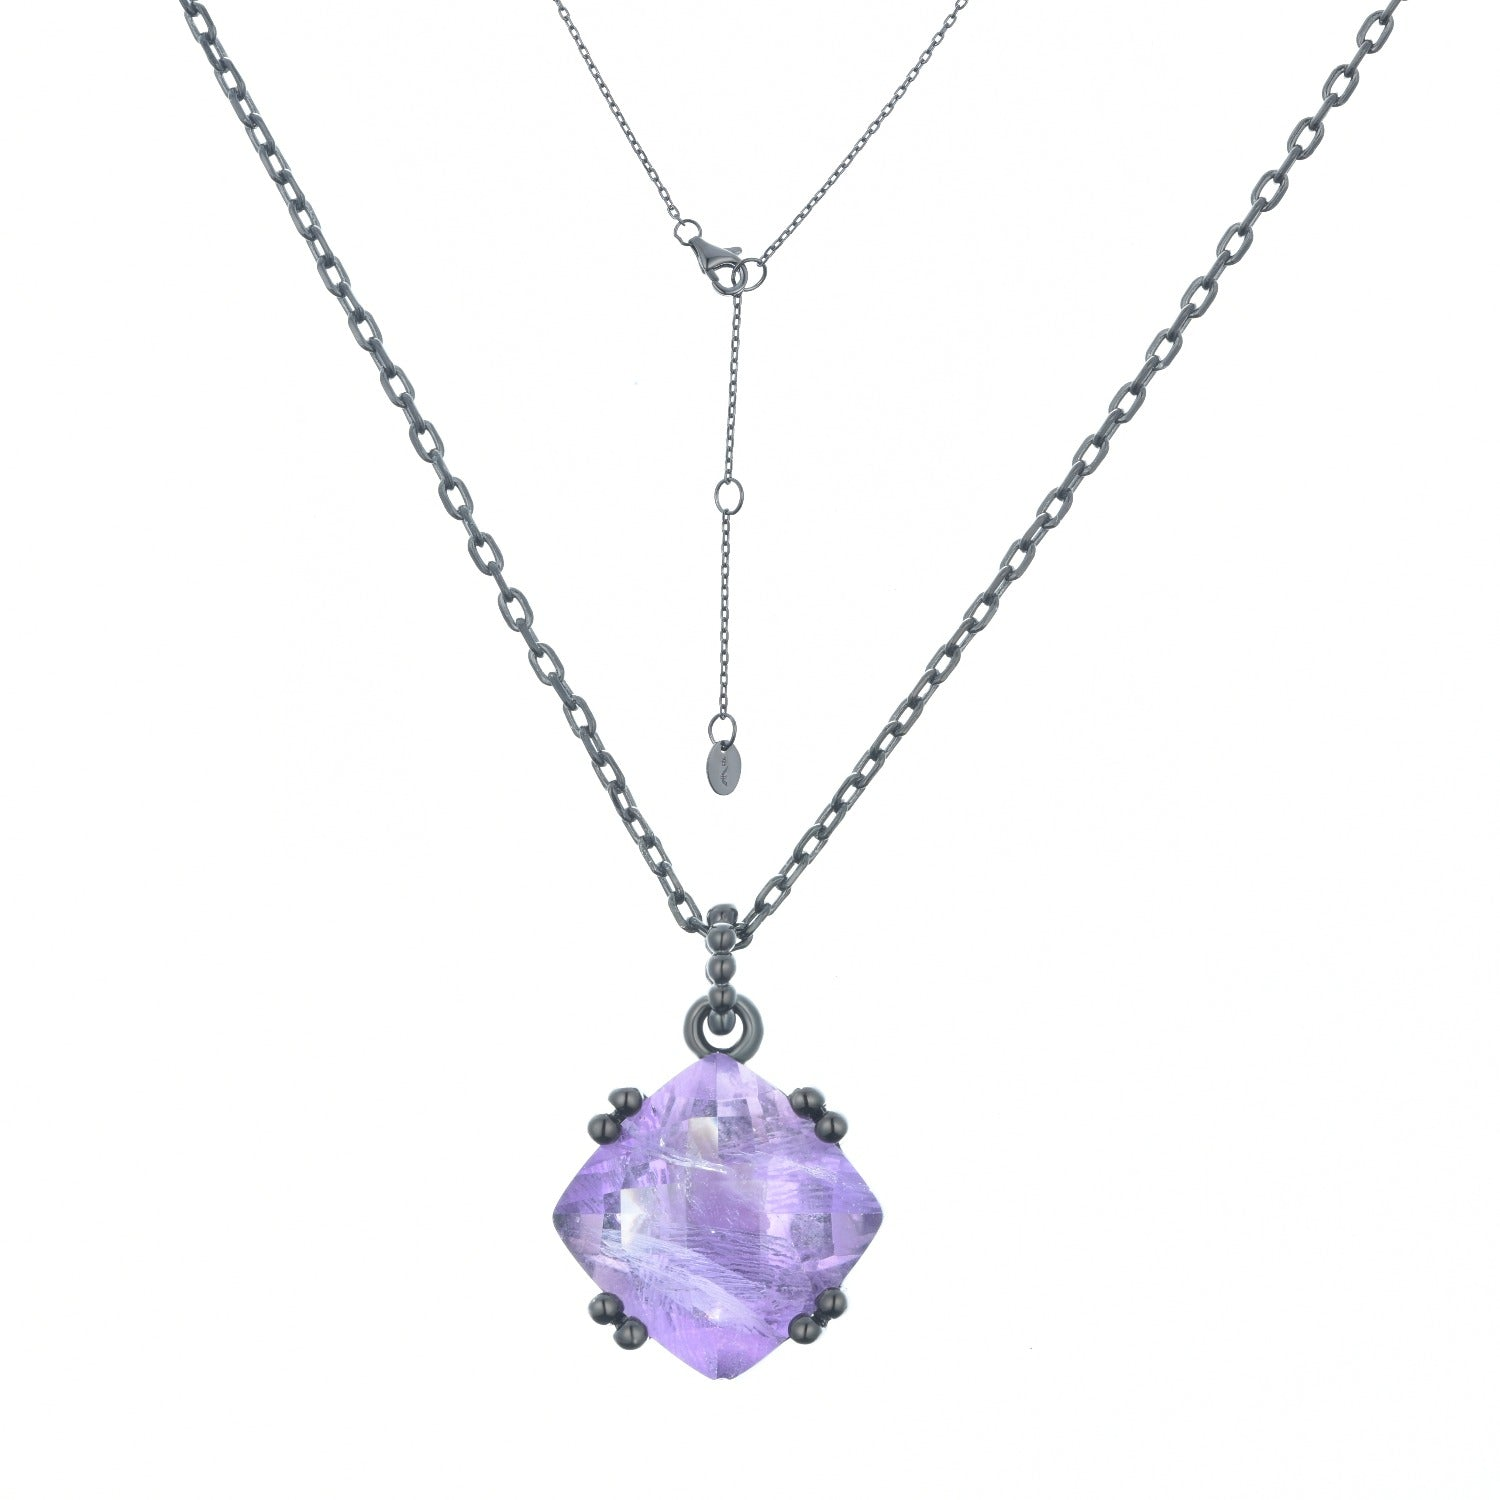 Fortuna | Prato Necklace II | 925 Silver | Amethyst | Black Rhodium Plated